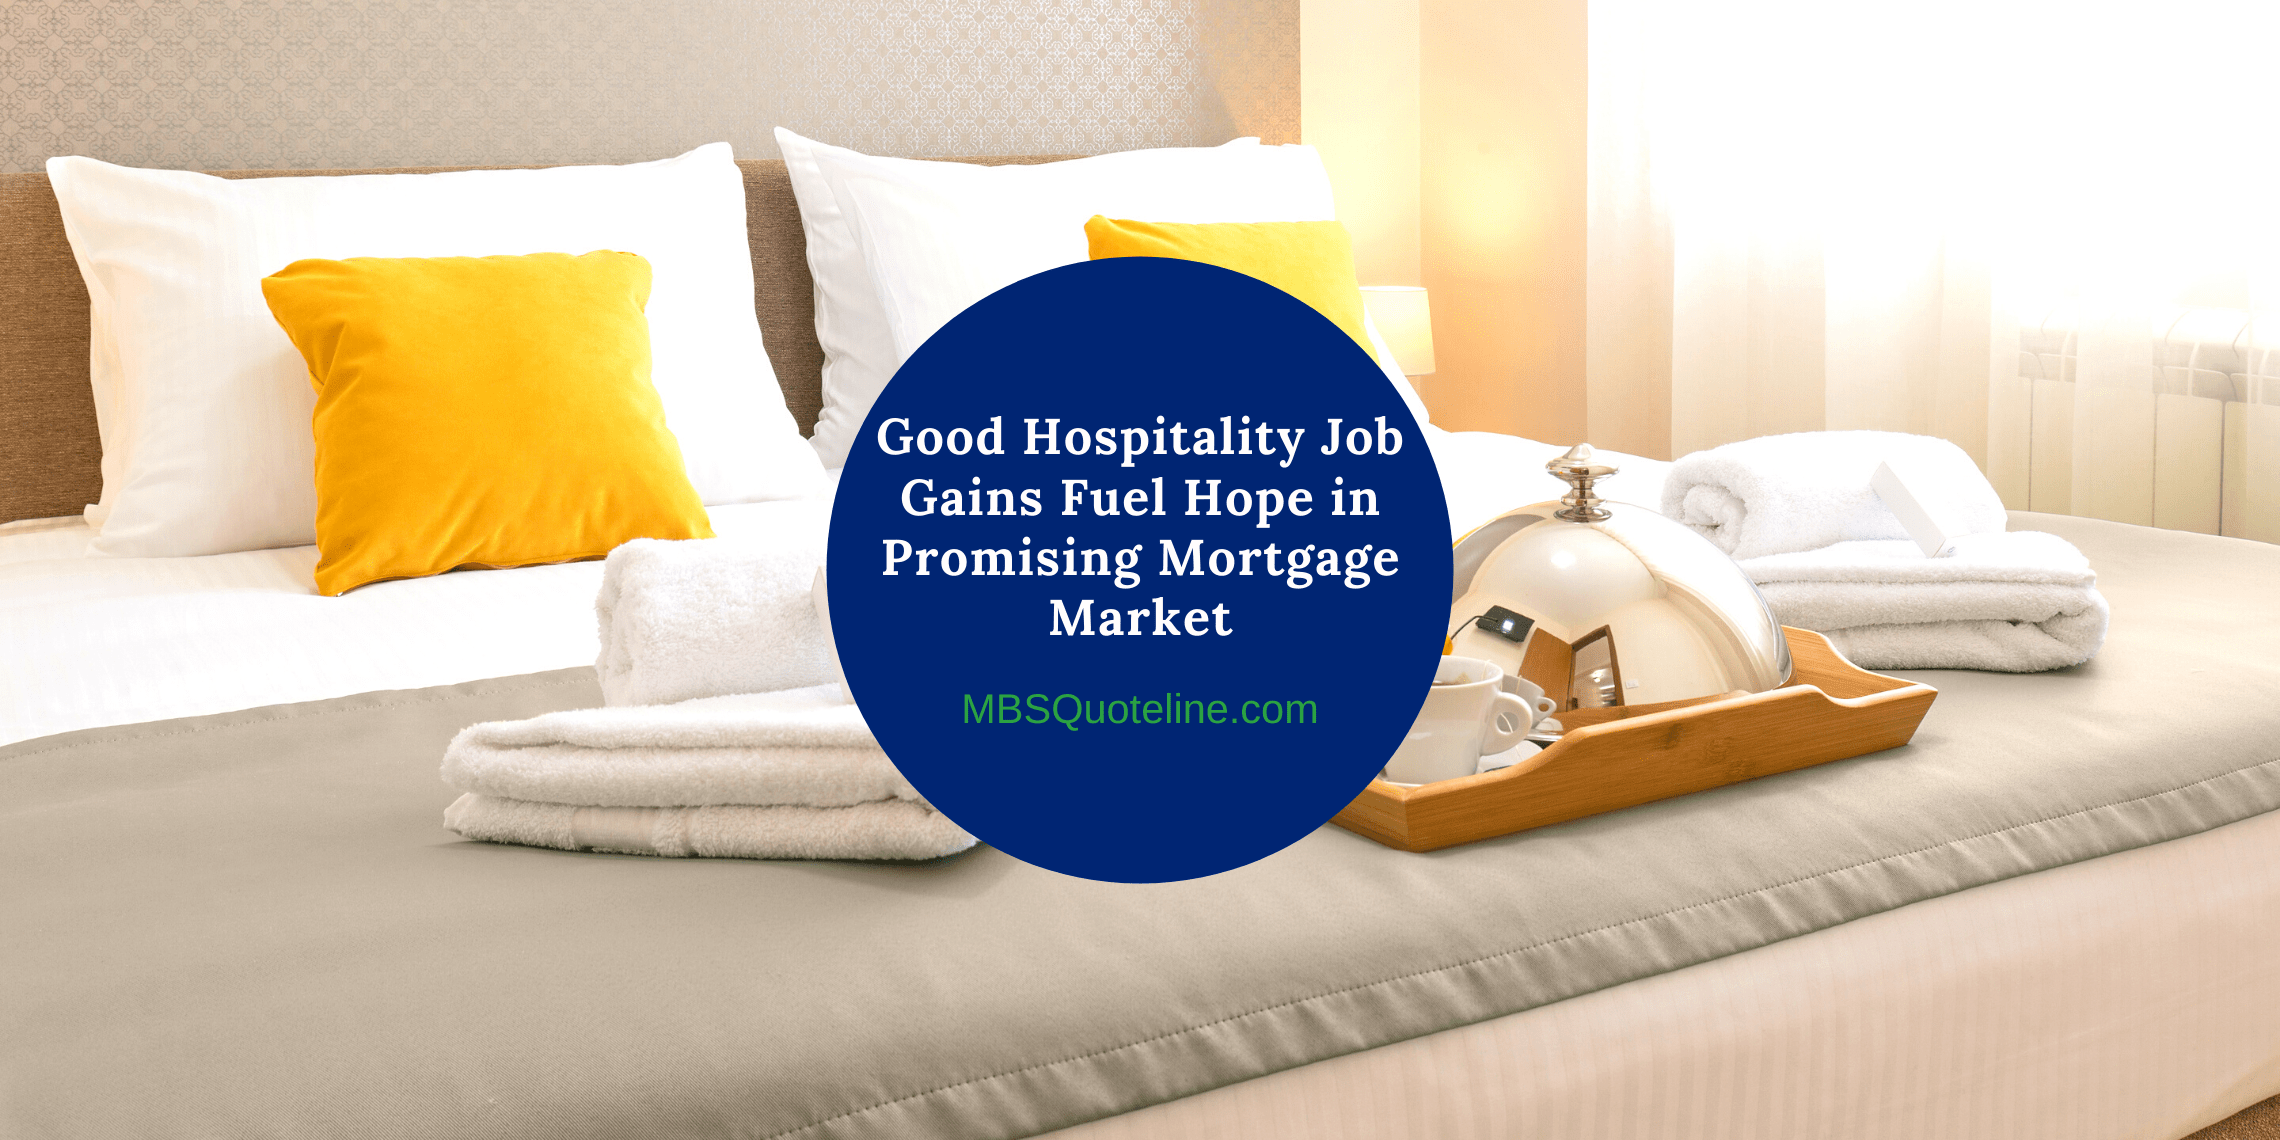 Good Hospitality Job Gains Fuel Hope in Promising Mortgage Market mortgagetime mbsquoteline featured